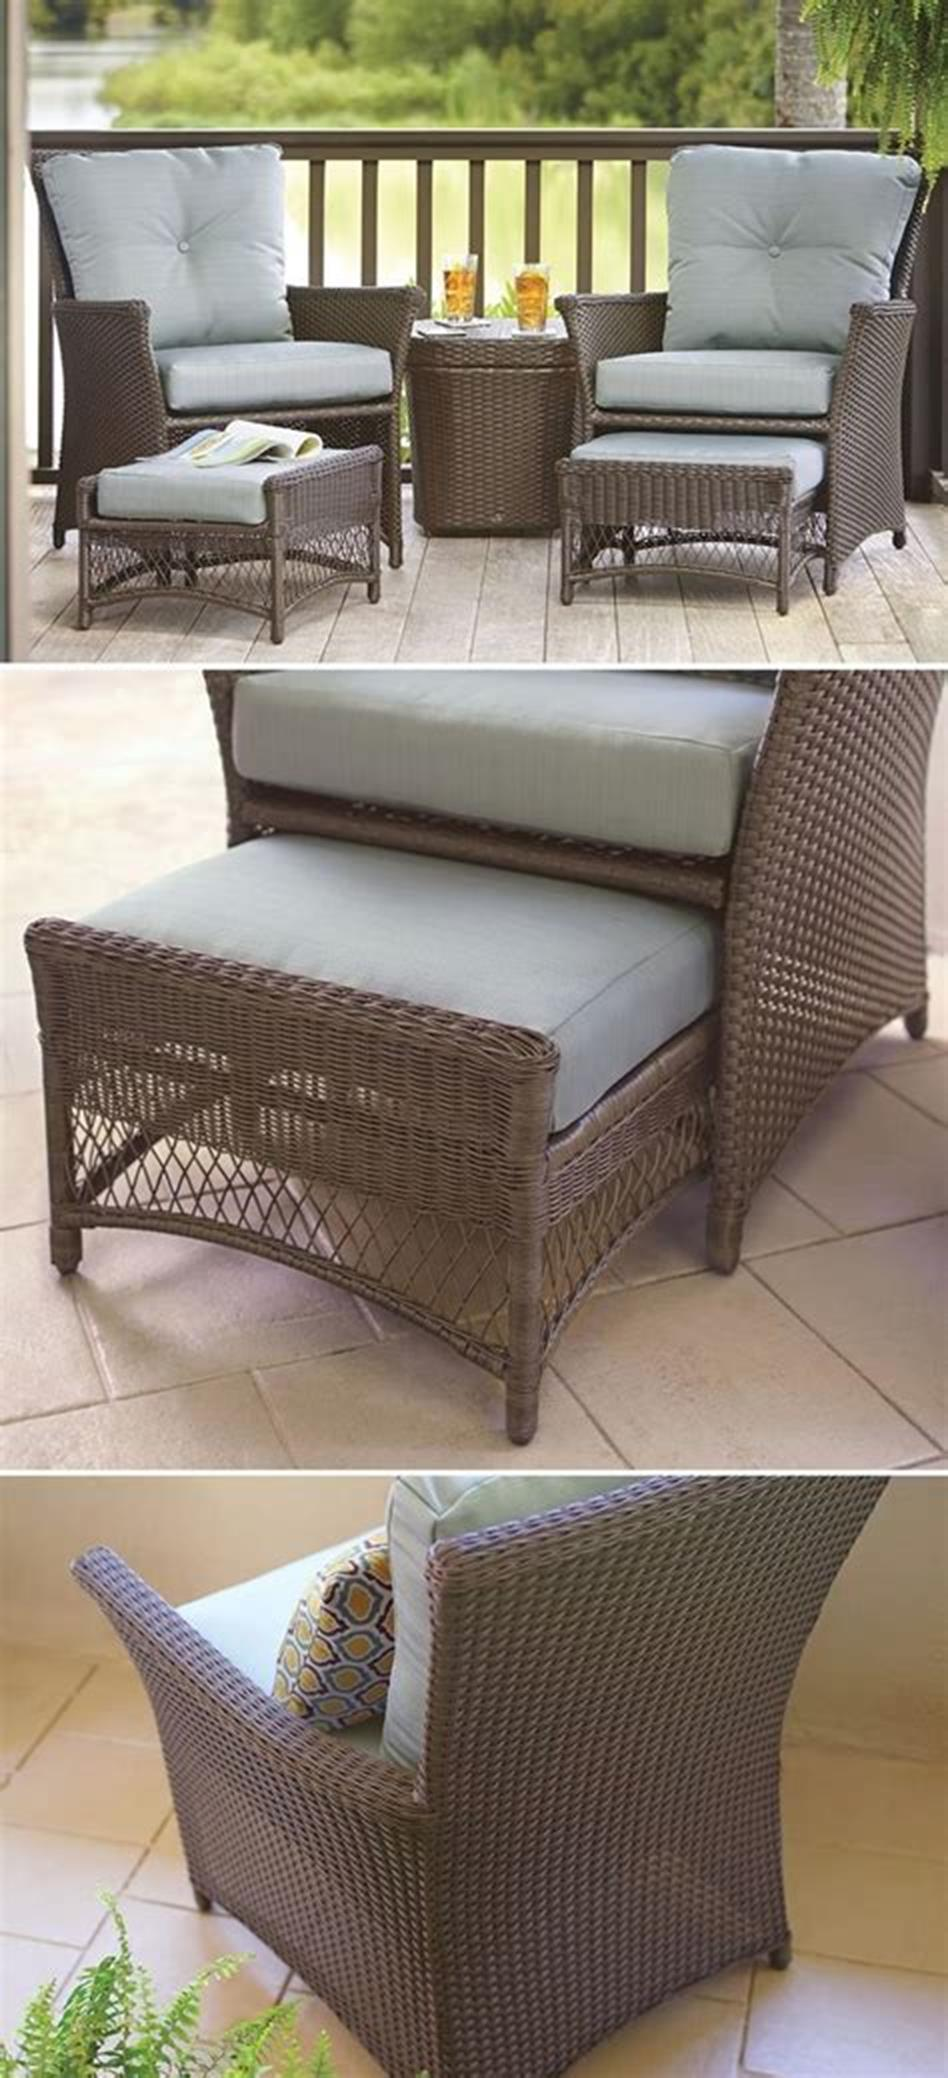 50 Amazing Ideas Furniture for Small Spaces Youll Love 6